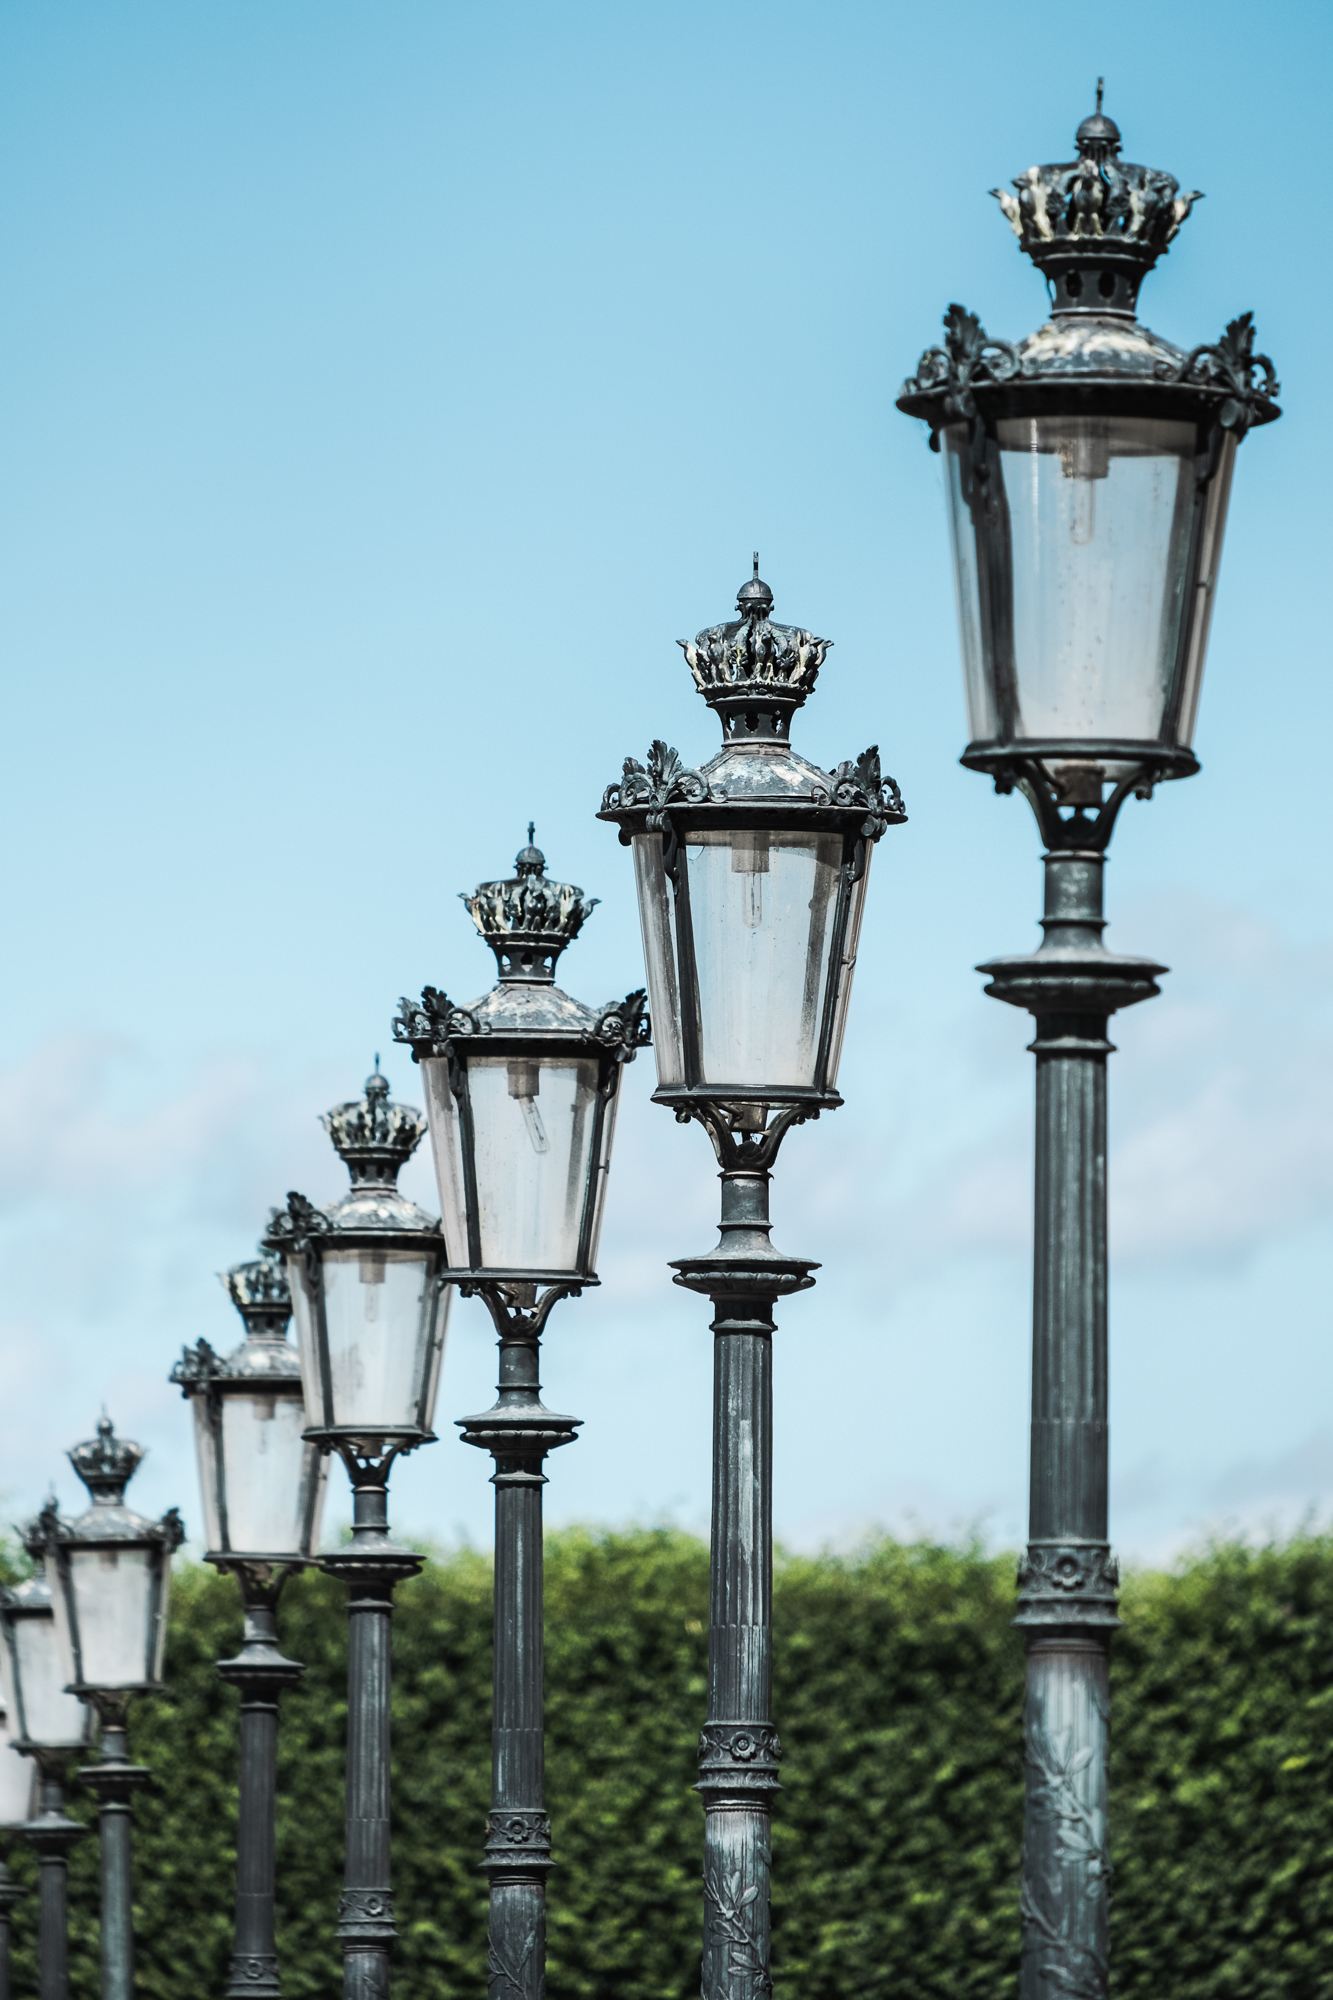 Street Lamps at Musée du Louvre | Fujifilm XT2 | XF55-200mm | 200mm | 1/1,500 second | f/5.6 | ISO200